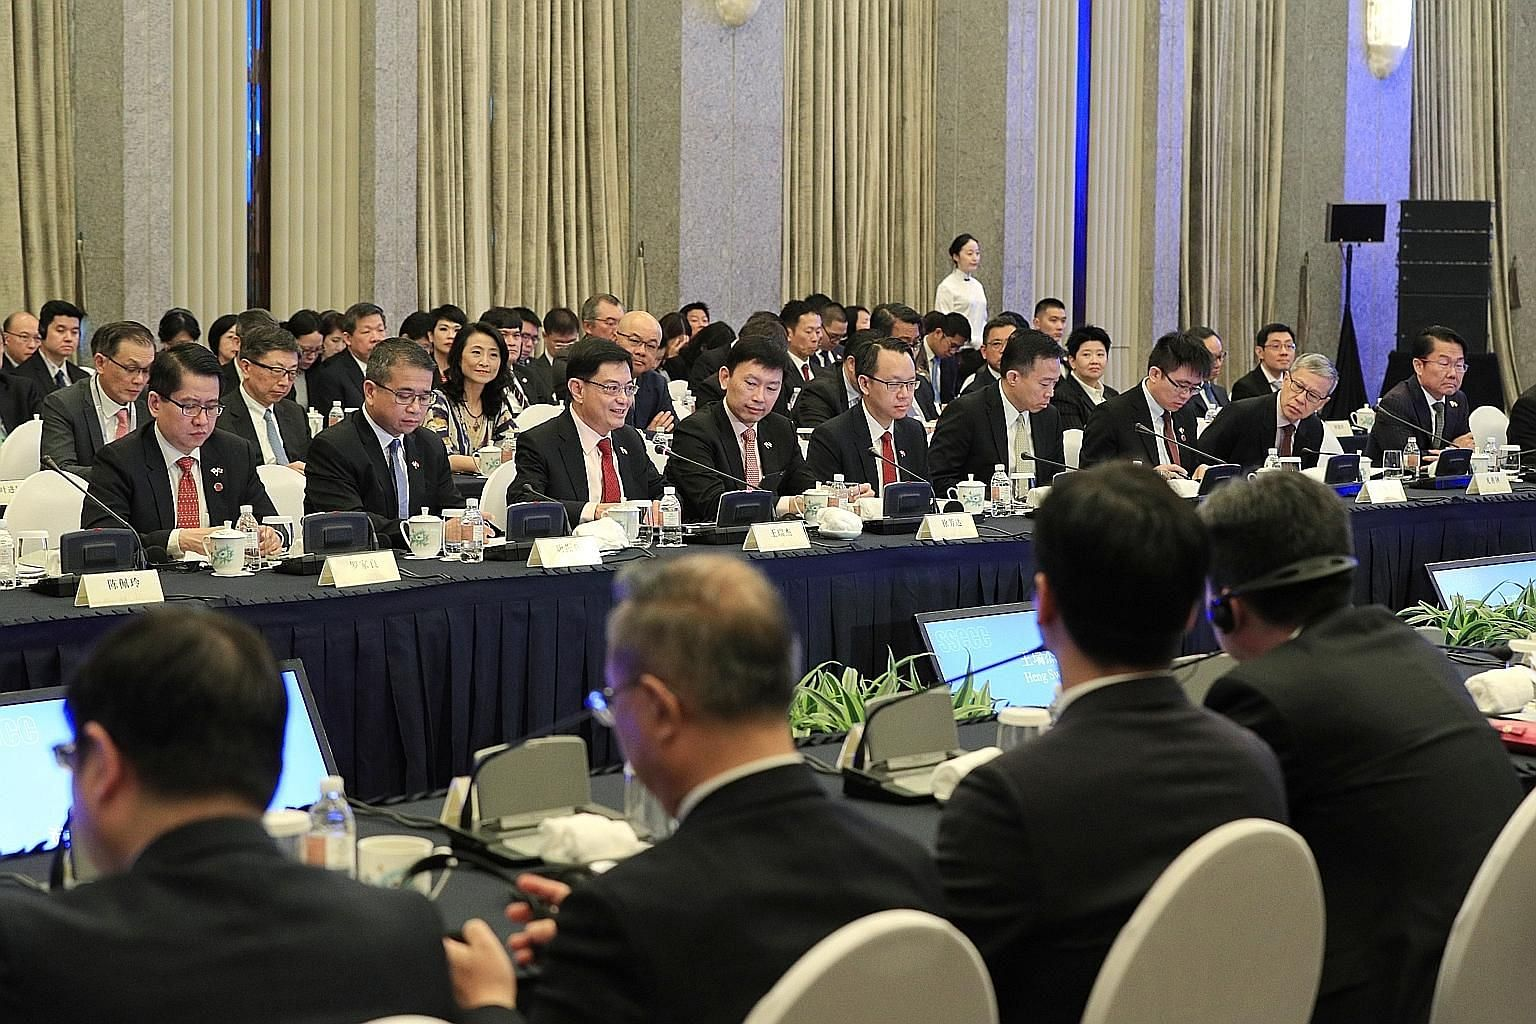 Deputy Prime Minister Heng Swee Keat (third from left) delivering the opening address at the inaugural Singapore-Shanghai Comprehensive Cooperation Council meeting yesterday. The council, which Mr Heng co-chairs with Shanghai Mayor Ying Yong, is Sing